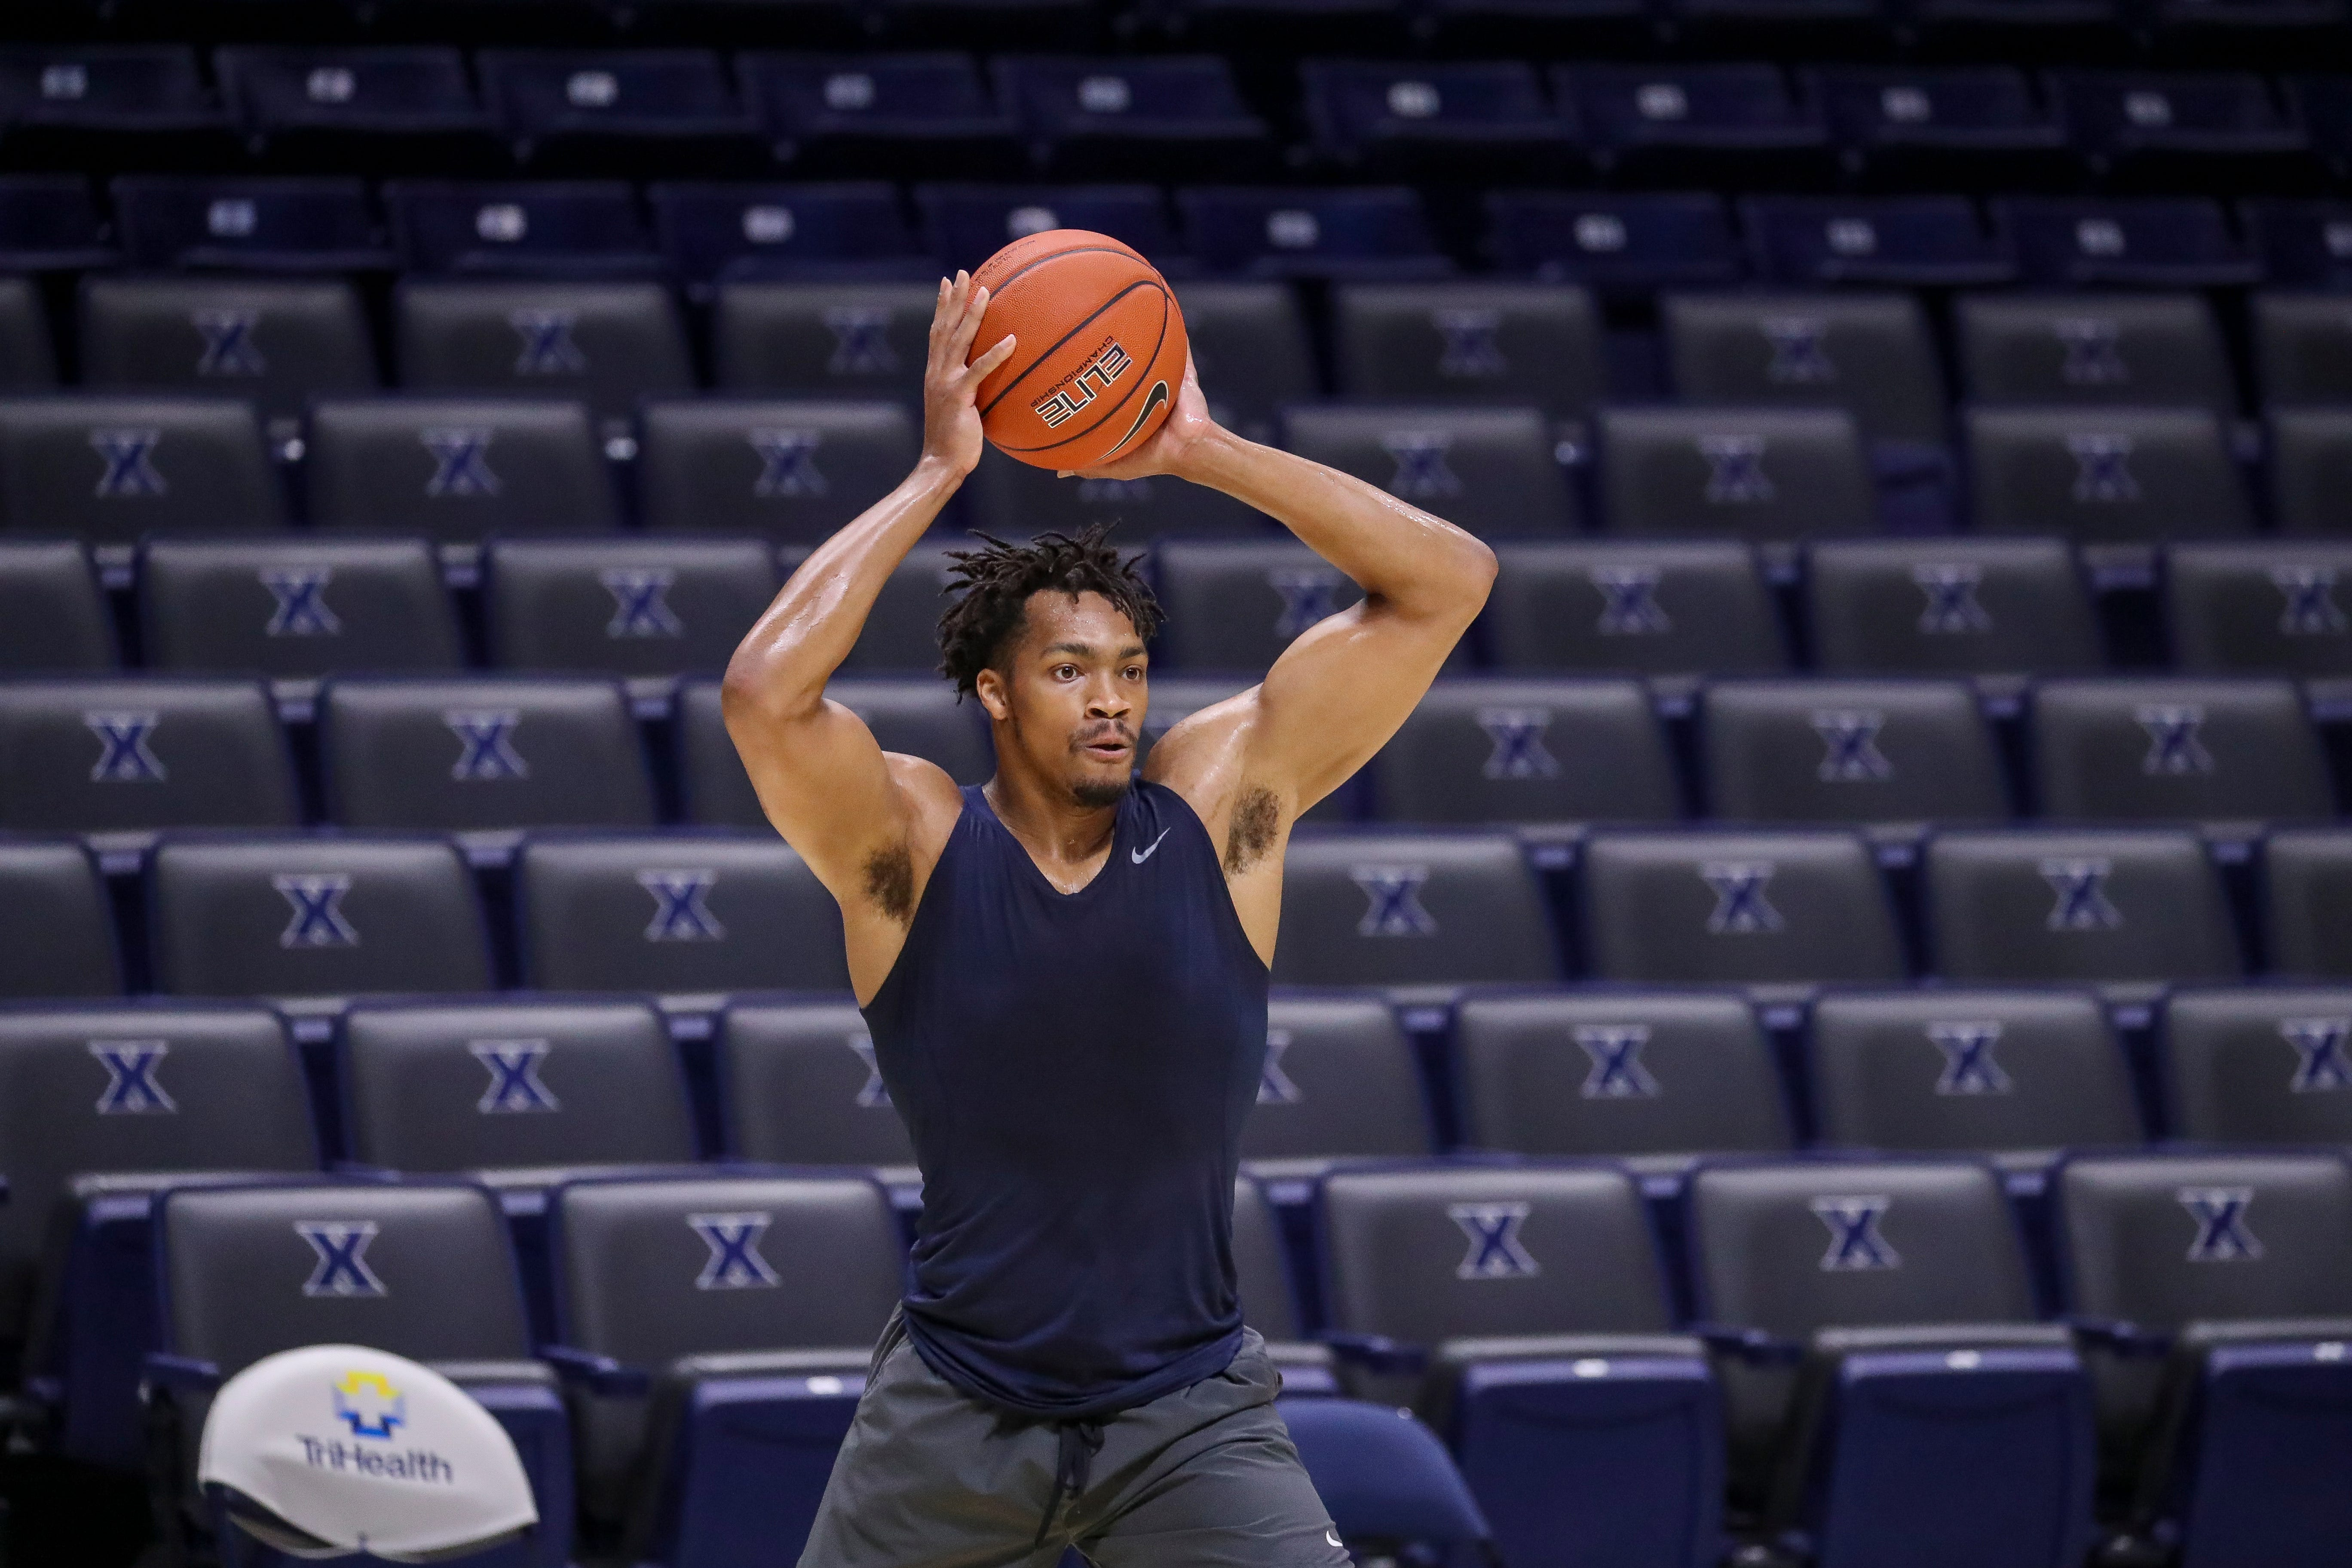 NCAA denies waiver request for Xavier forward Ben Stanley, who sought in-person classes